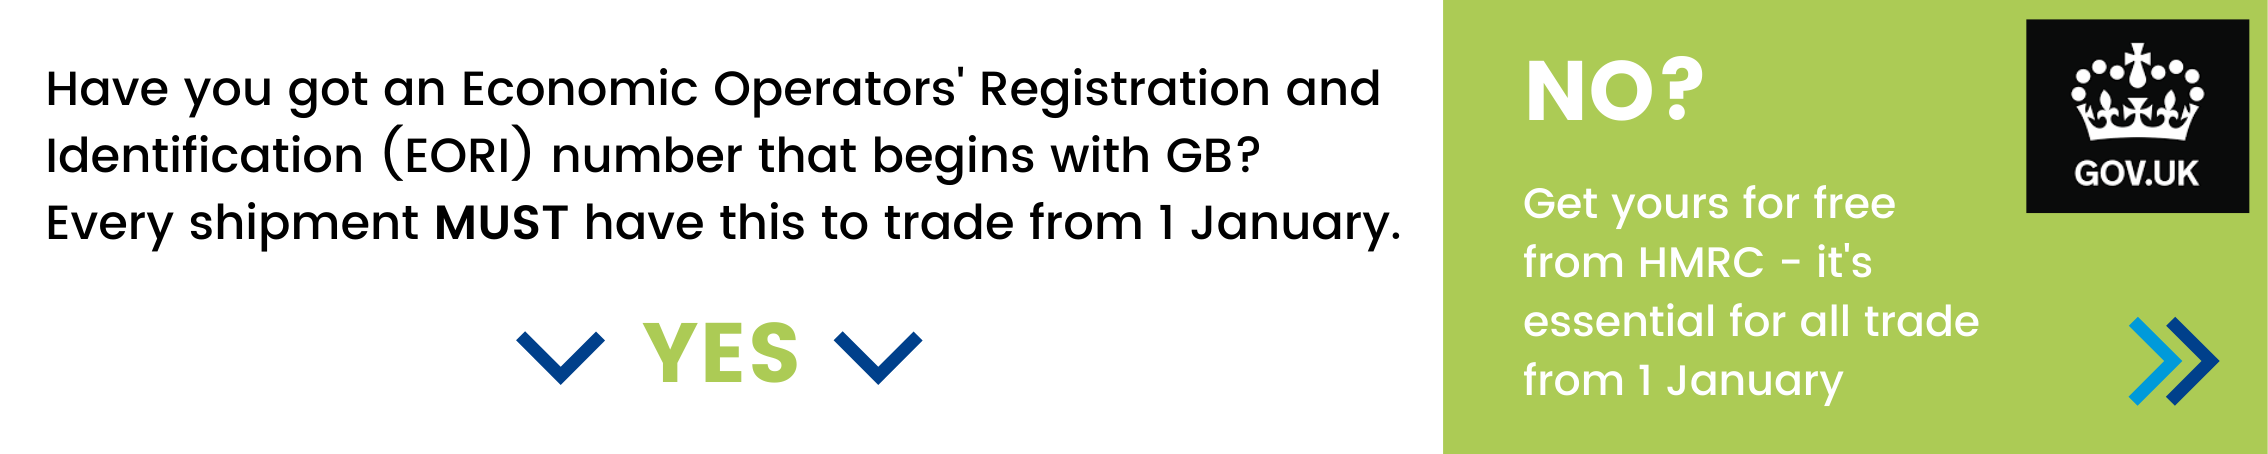 Have you got an Economic Operators' Registration and Identification (EORI) number that begins with GB? Every shipment must have this to trade from 1 January. If not - get yours for free from HMRC by clicking this button.